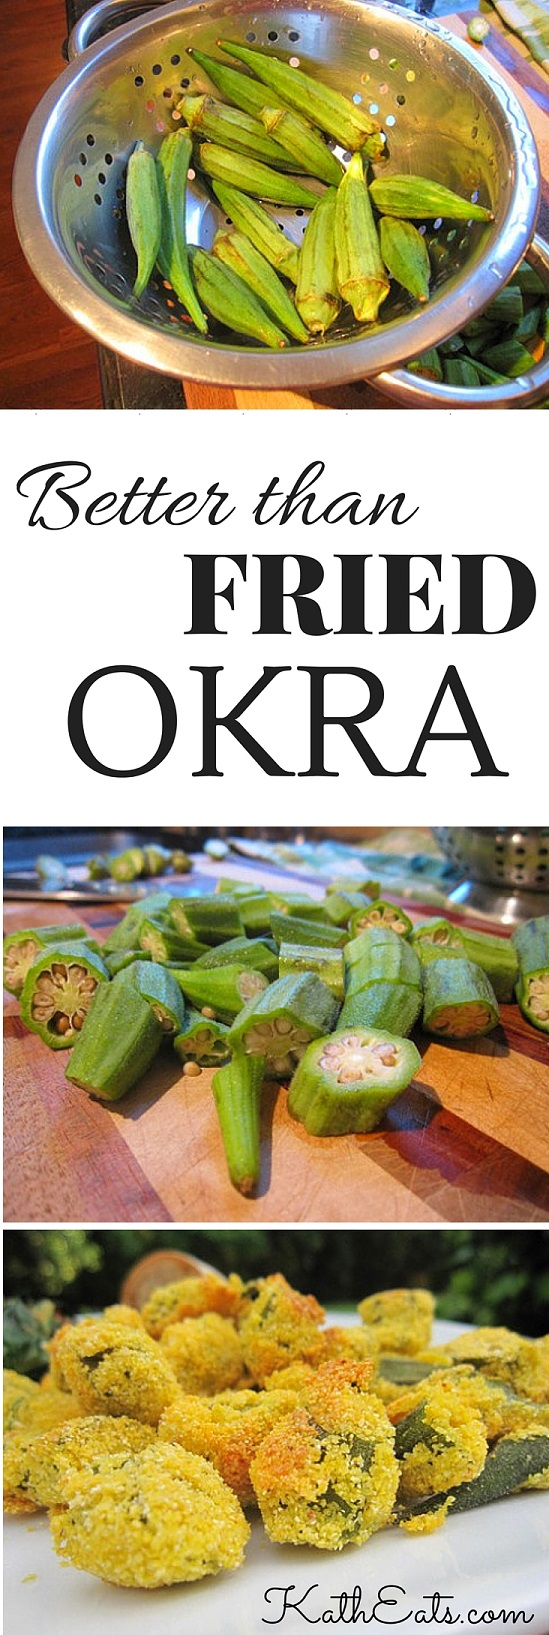 BetterThan Fried Okra2